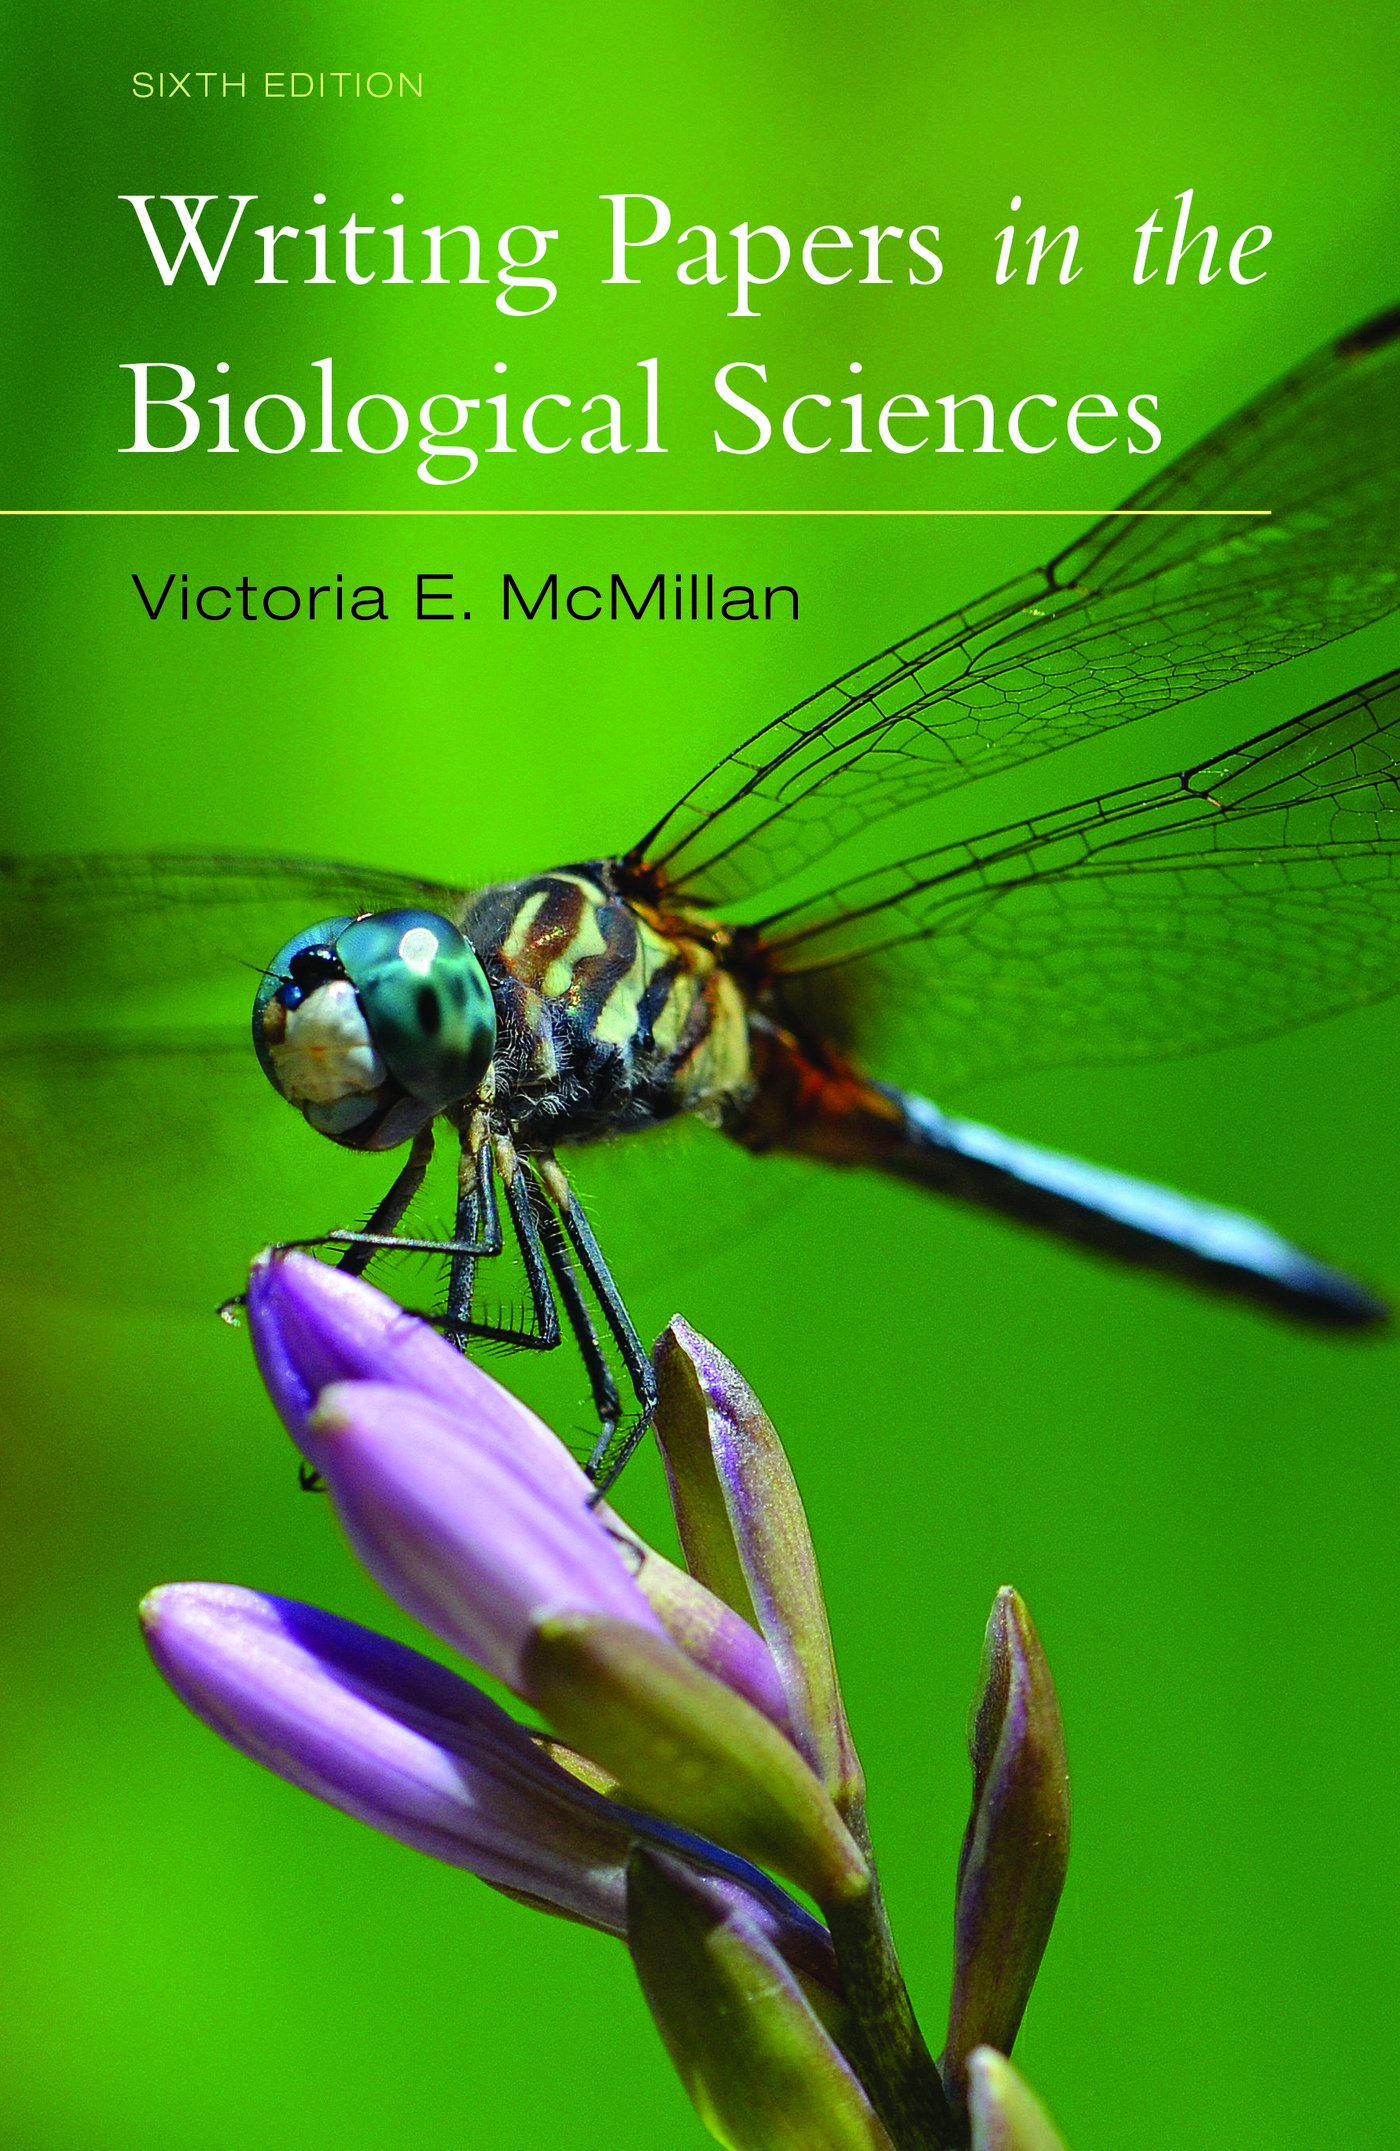 Writing Papers in the Biological Sciences by Bedford/St. Martin's